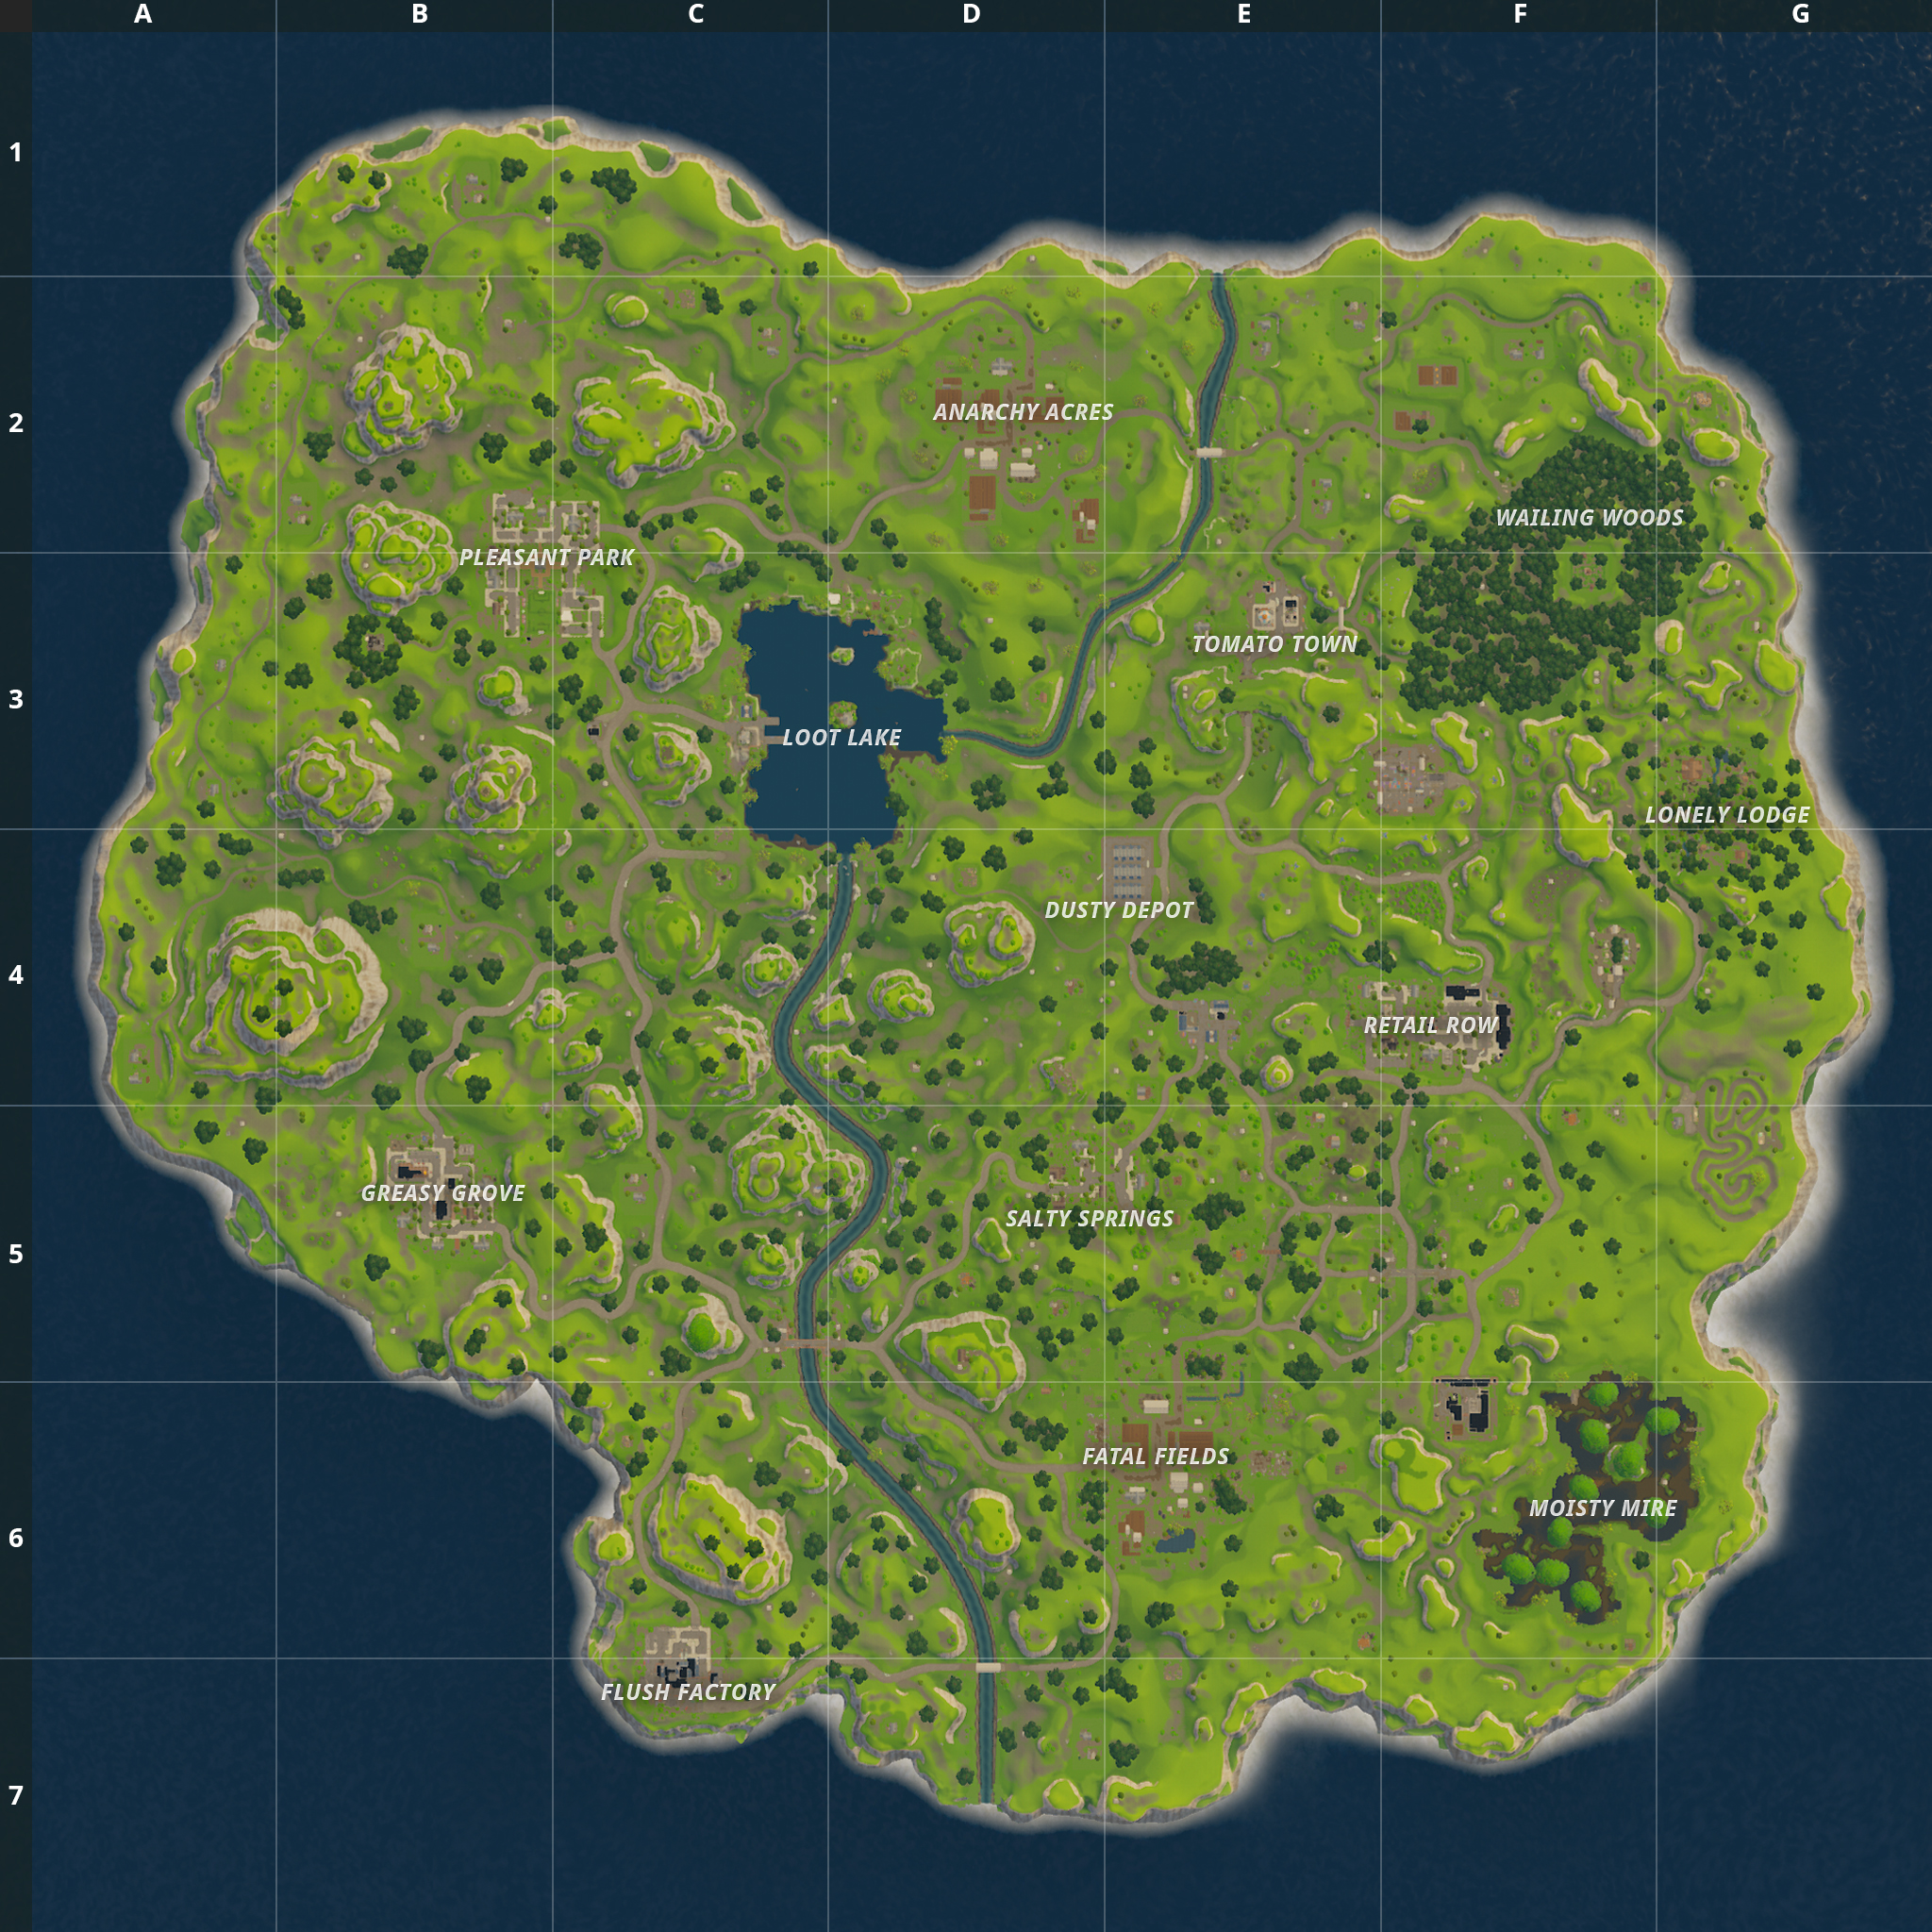 Fortnite%2Fblog%2F1-7-1-patch-notes%2FMiniMapAthena-2048x2048-257033270bfbd1f8bd239d3fc98dd2a6438e85e4.jpg